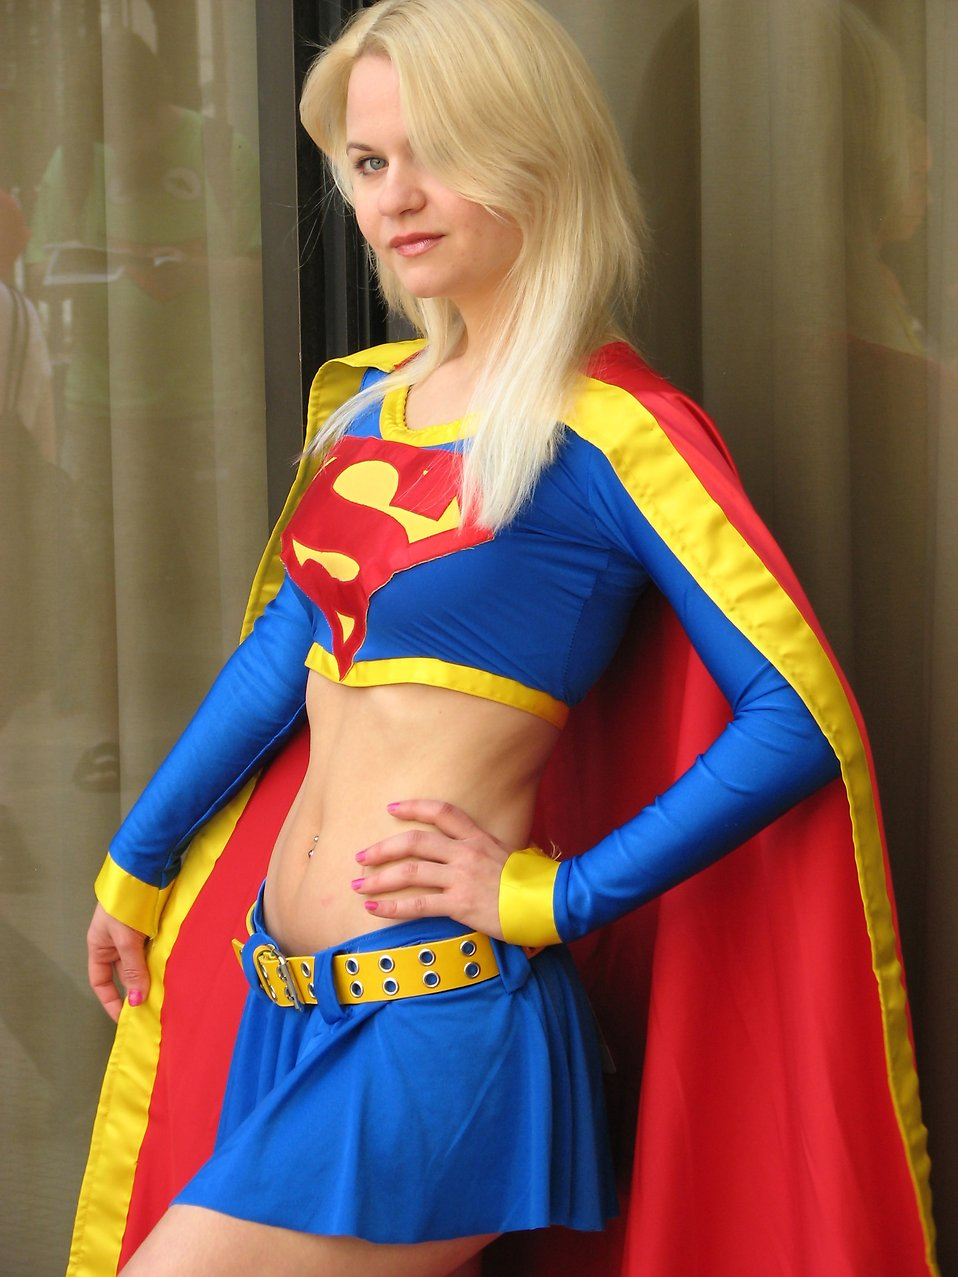 Beautiful woman in Supergirl costume at Dragoncon : Free Stock Photo